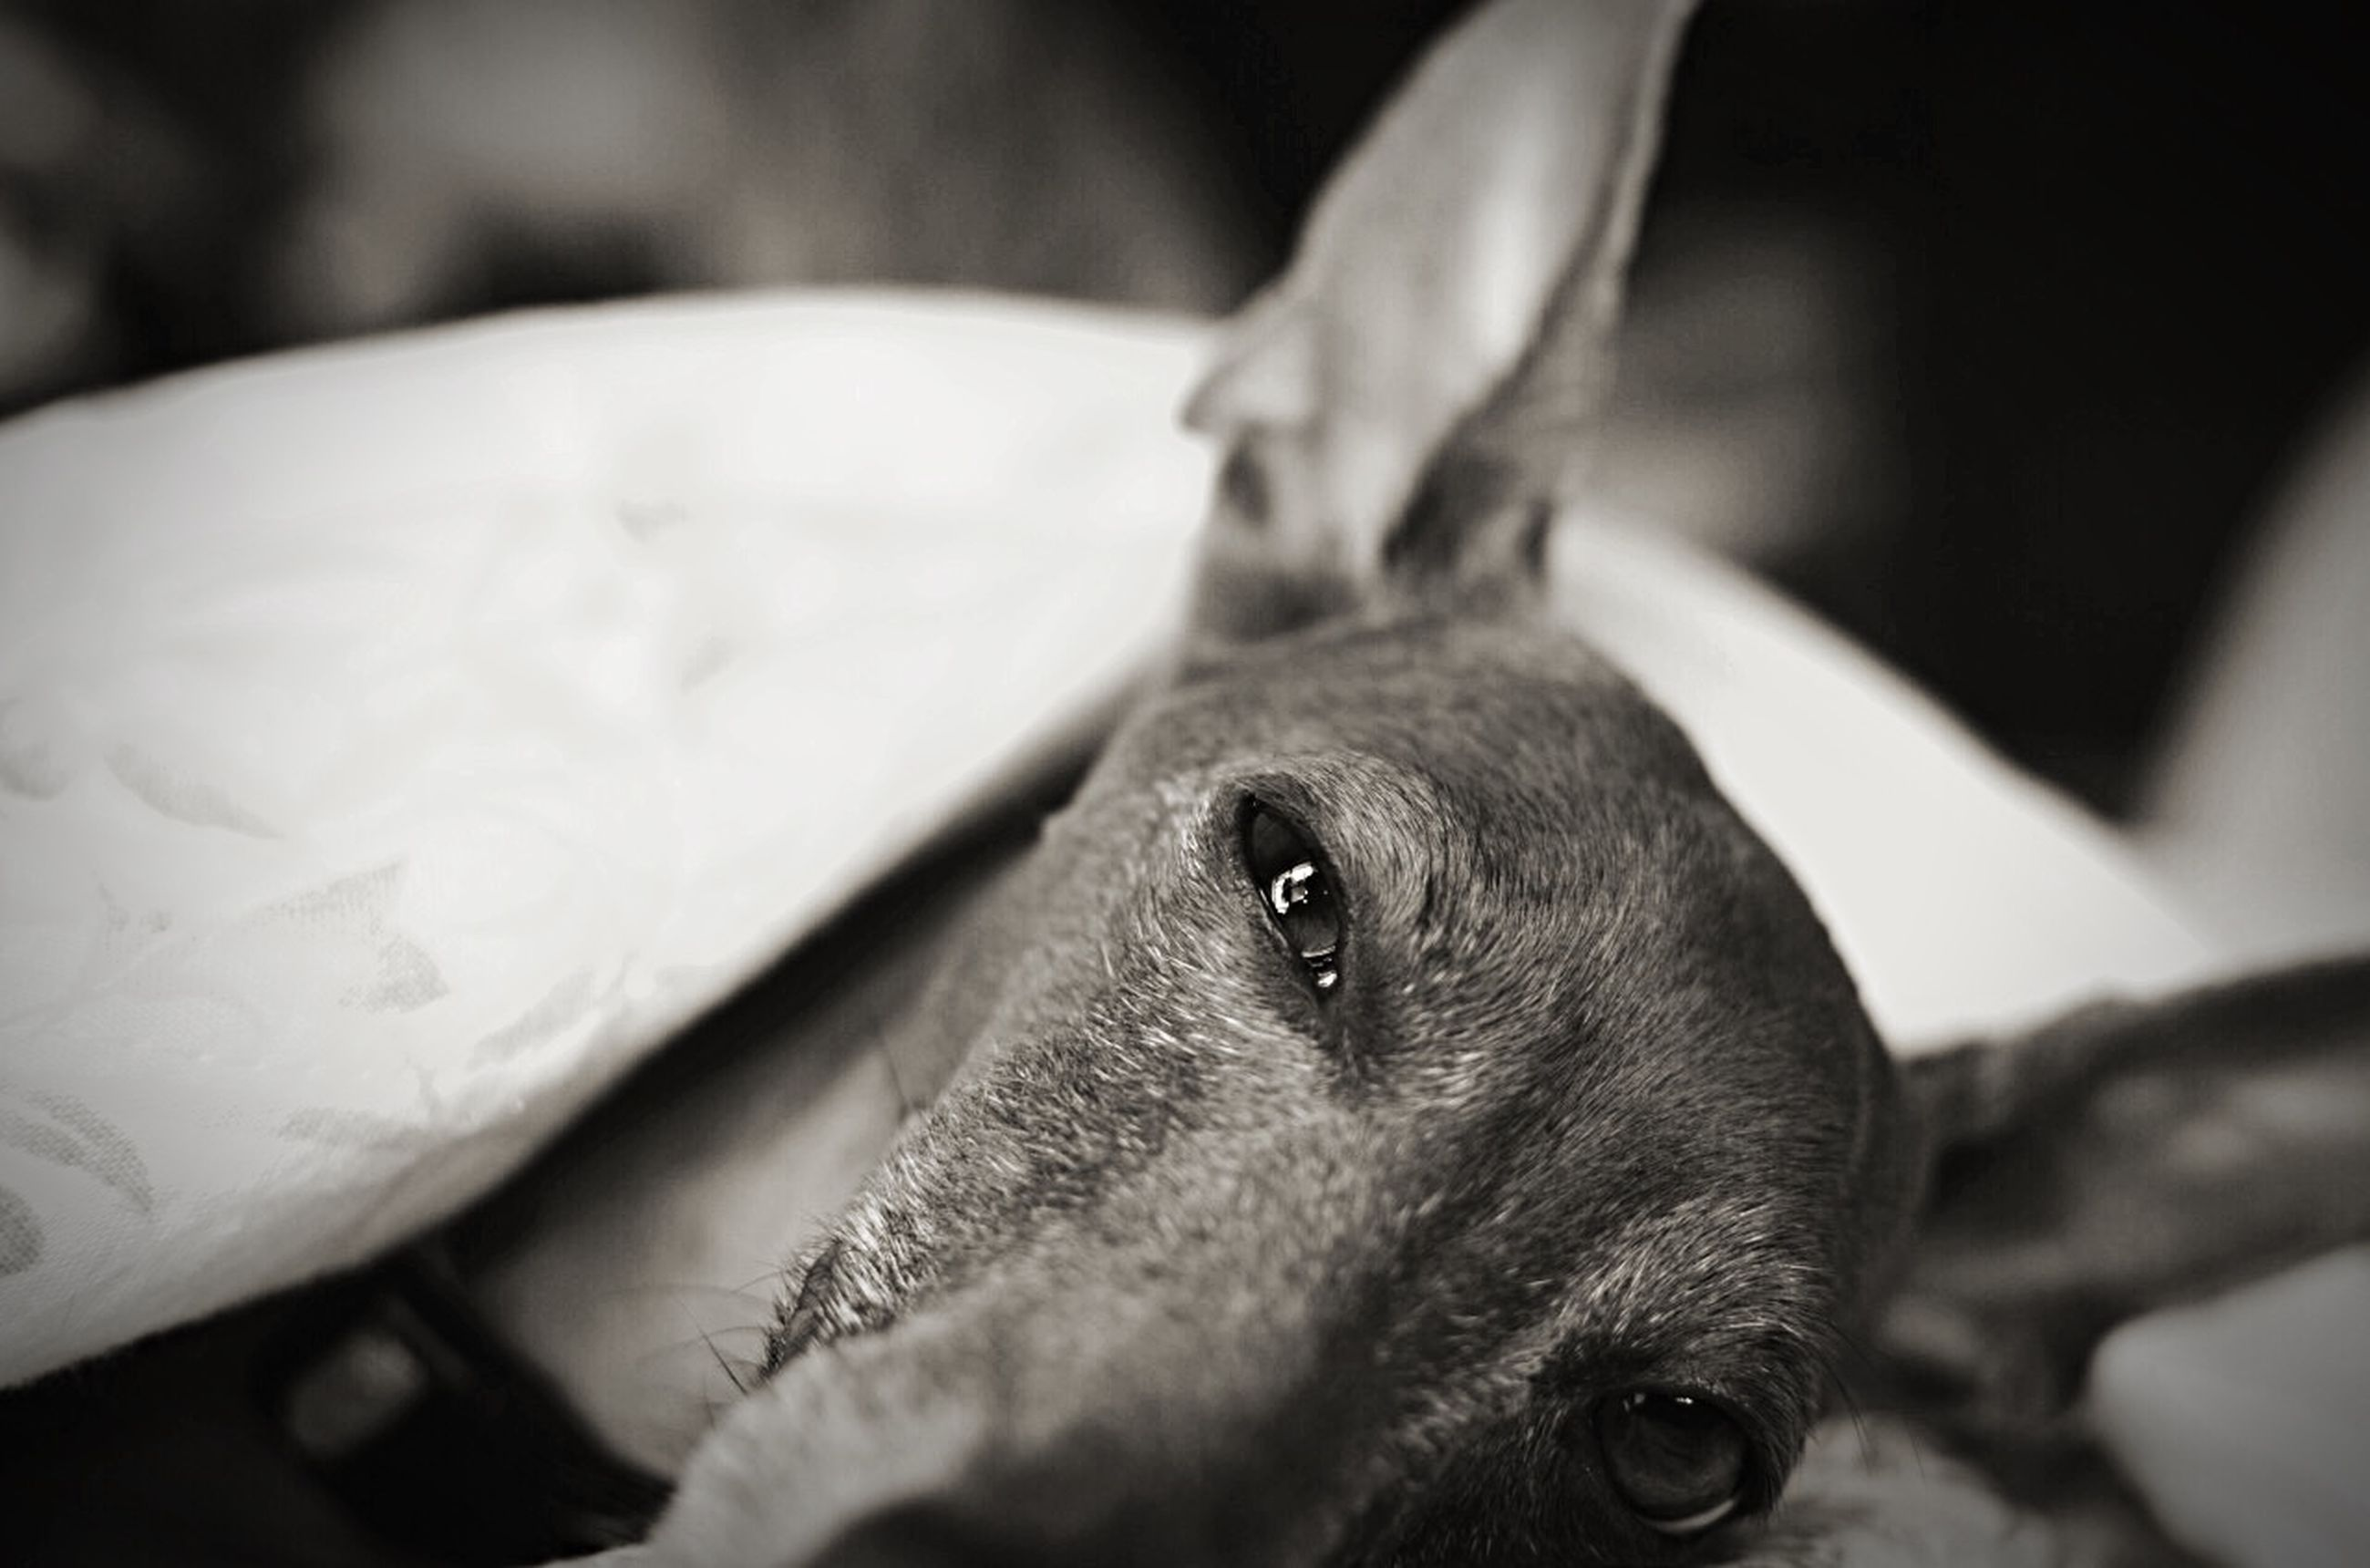 animal themes, one animal, pets, domestic animals, indoors, close-up, mammal, animal head, dog, animal body part, focus on foreground, selective focus, looking at camera, black color, portrait, part of, no people, relaxation, animal eye, home interior